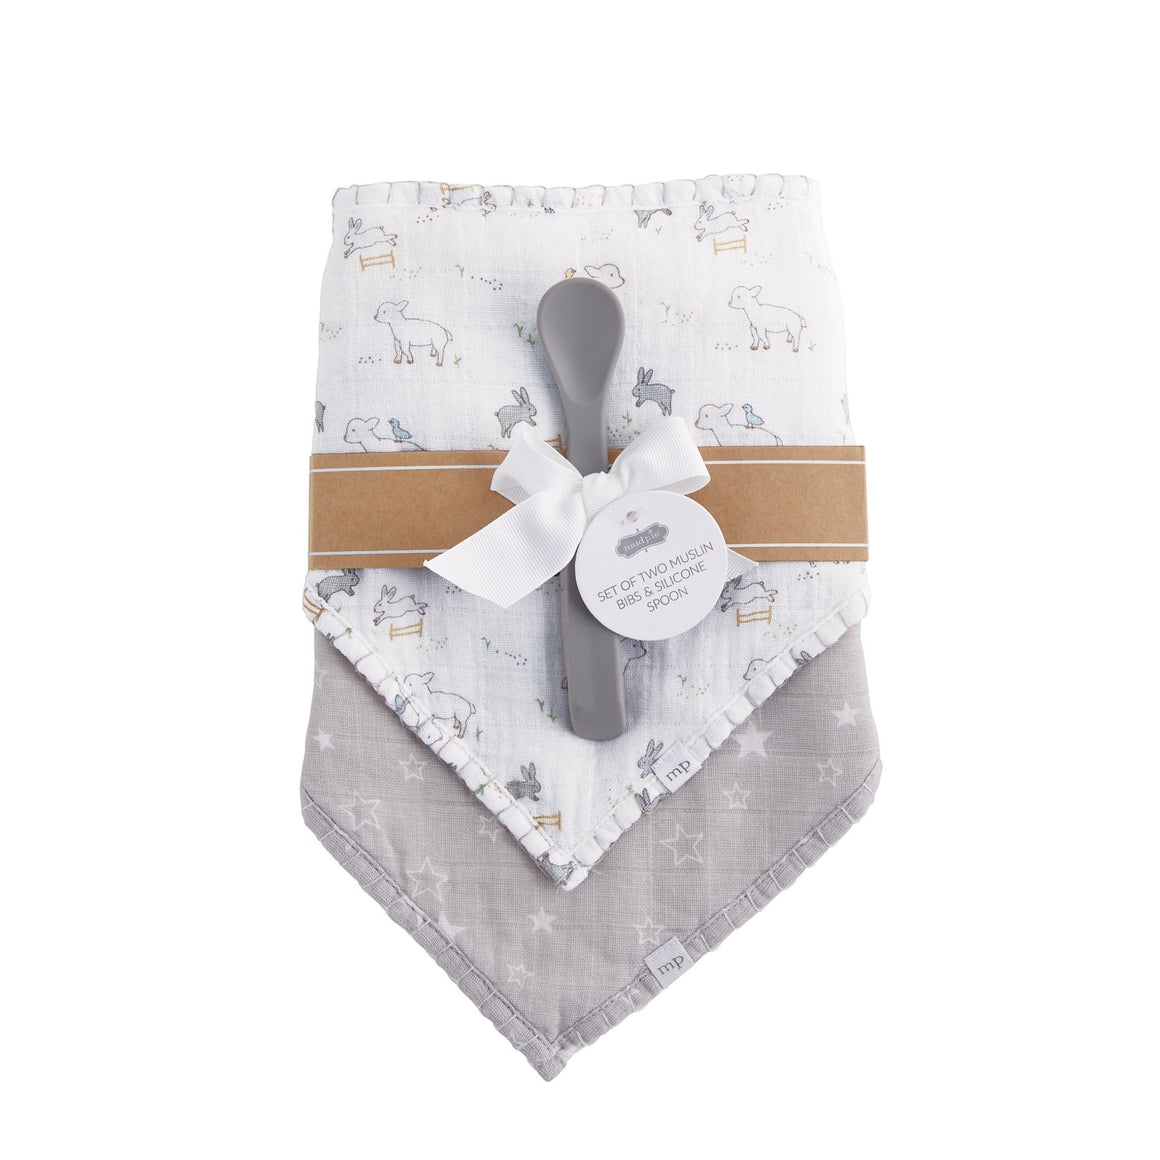 Lamb Muslin Bib & Spoon Set